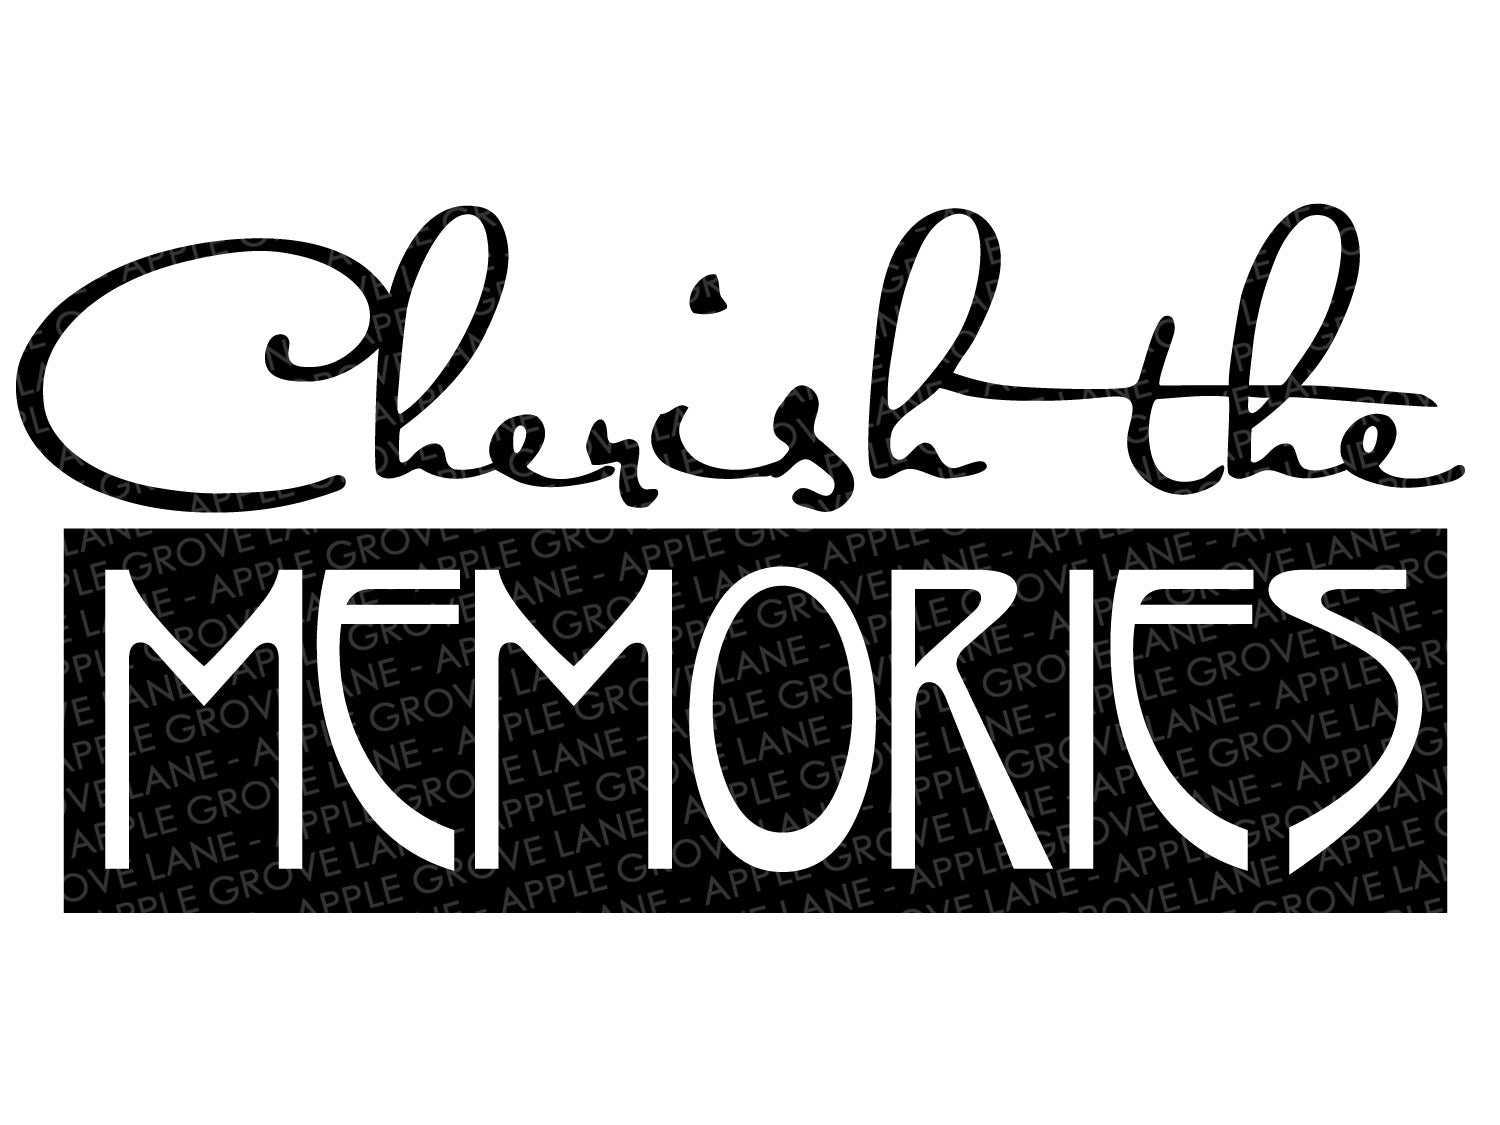 Cherish The Memories Svg - Cherish Svg - Love Svg - Cherished Memories Svg - Funeral Svg - Loss Svg - Family Svg - Svg Eps Dxf Png